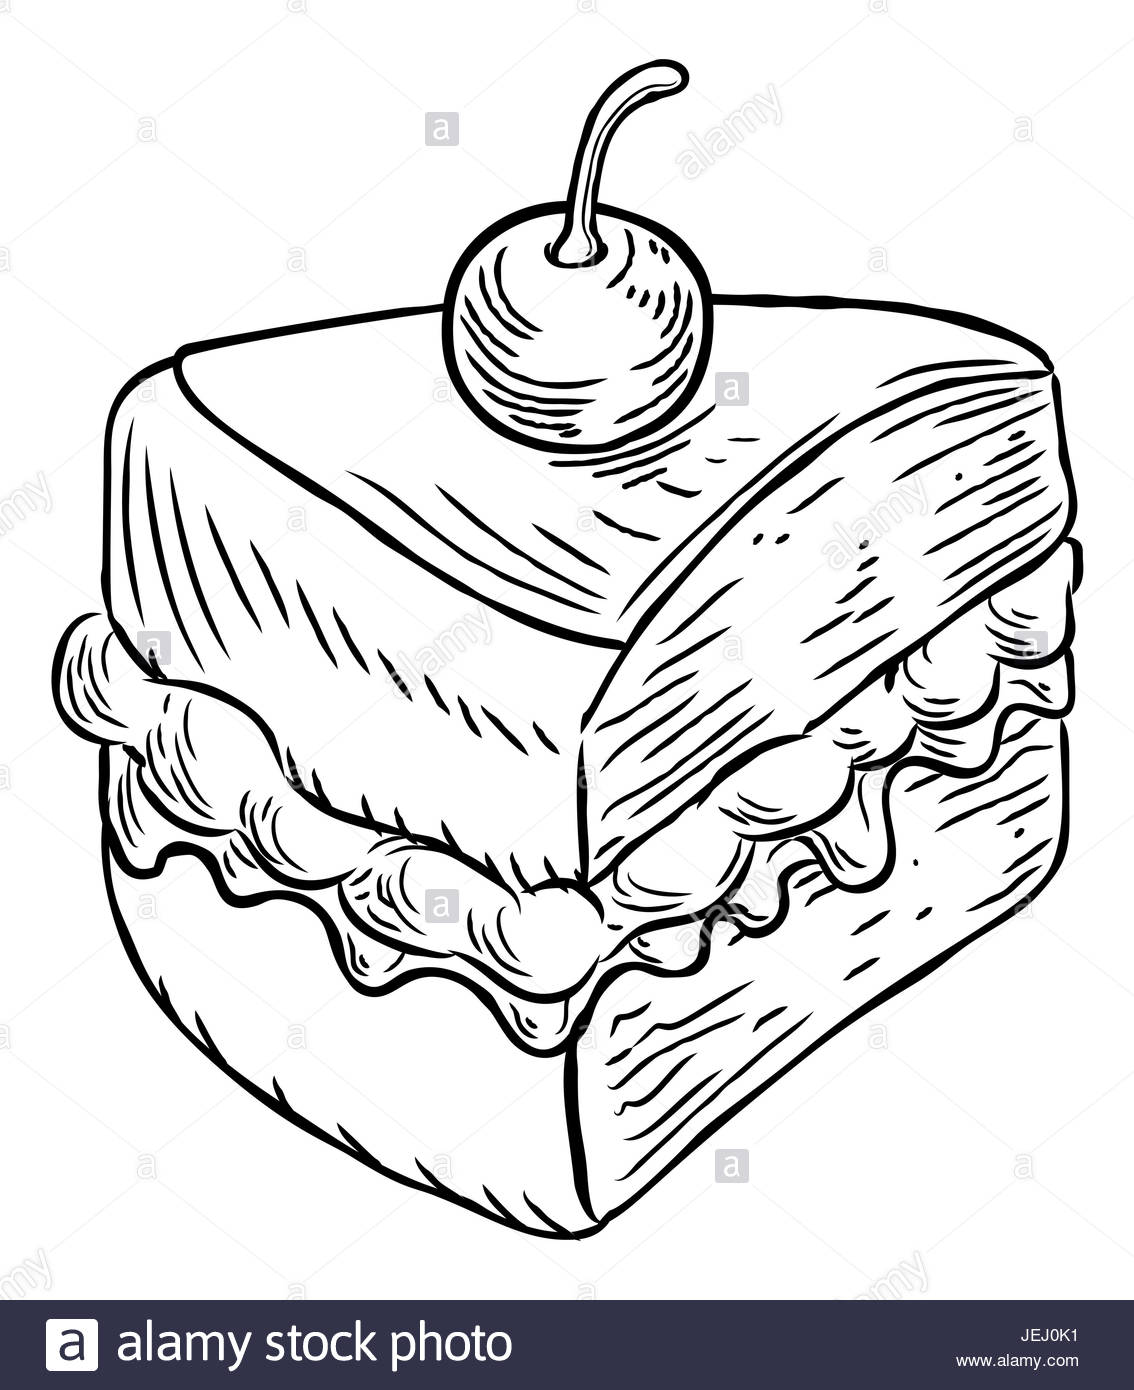 1134x1390 A Jam And Cream Victoria Sponge Cake Slice With Cherry, Hand Draw